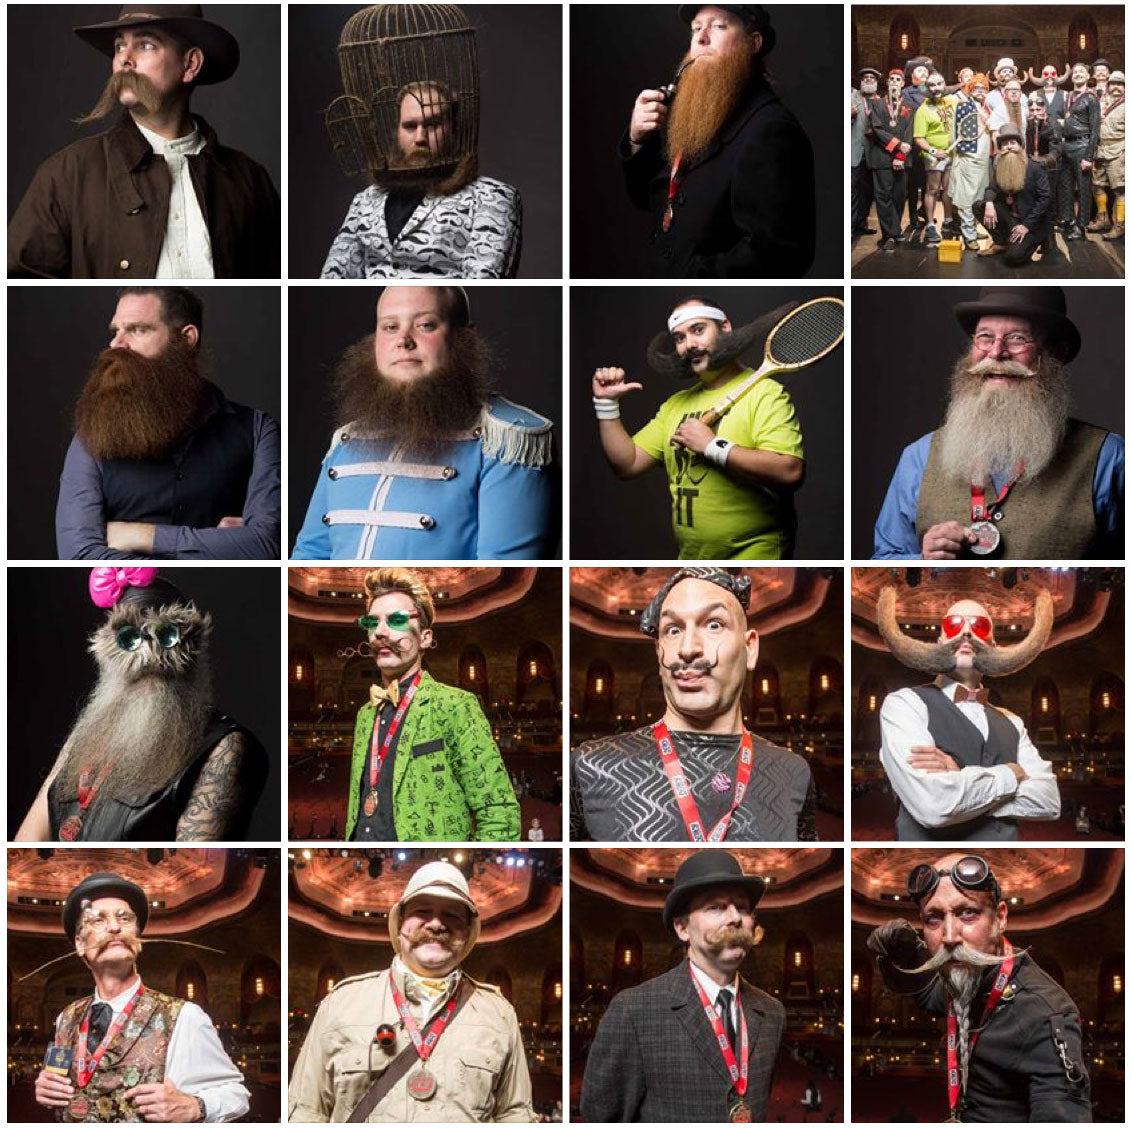 National Beard & Moustache Championships